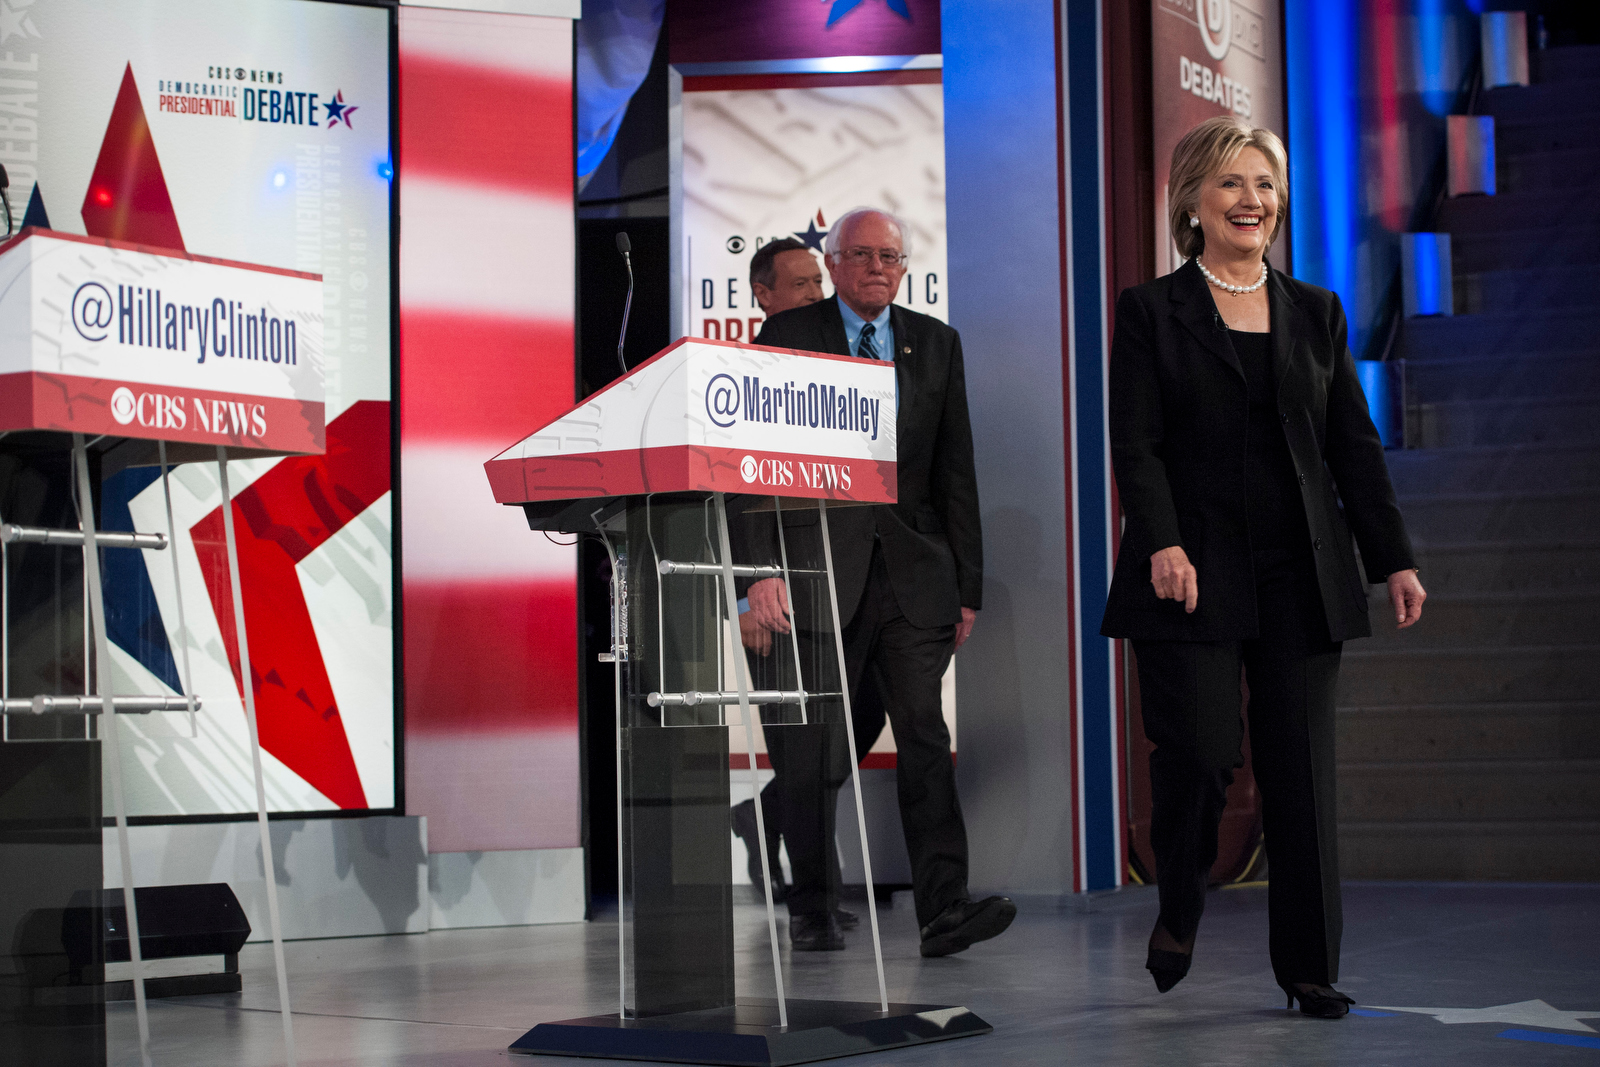 Democratic U.S. presidential candidates Hillary Clinton, Bernie Sanders, and Governor Martin O'Malley take the stage for the CBS Democratic Debate in Des Moines, Iowa November 14, 2015. REUTERS/Mark Kauzlarich